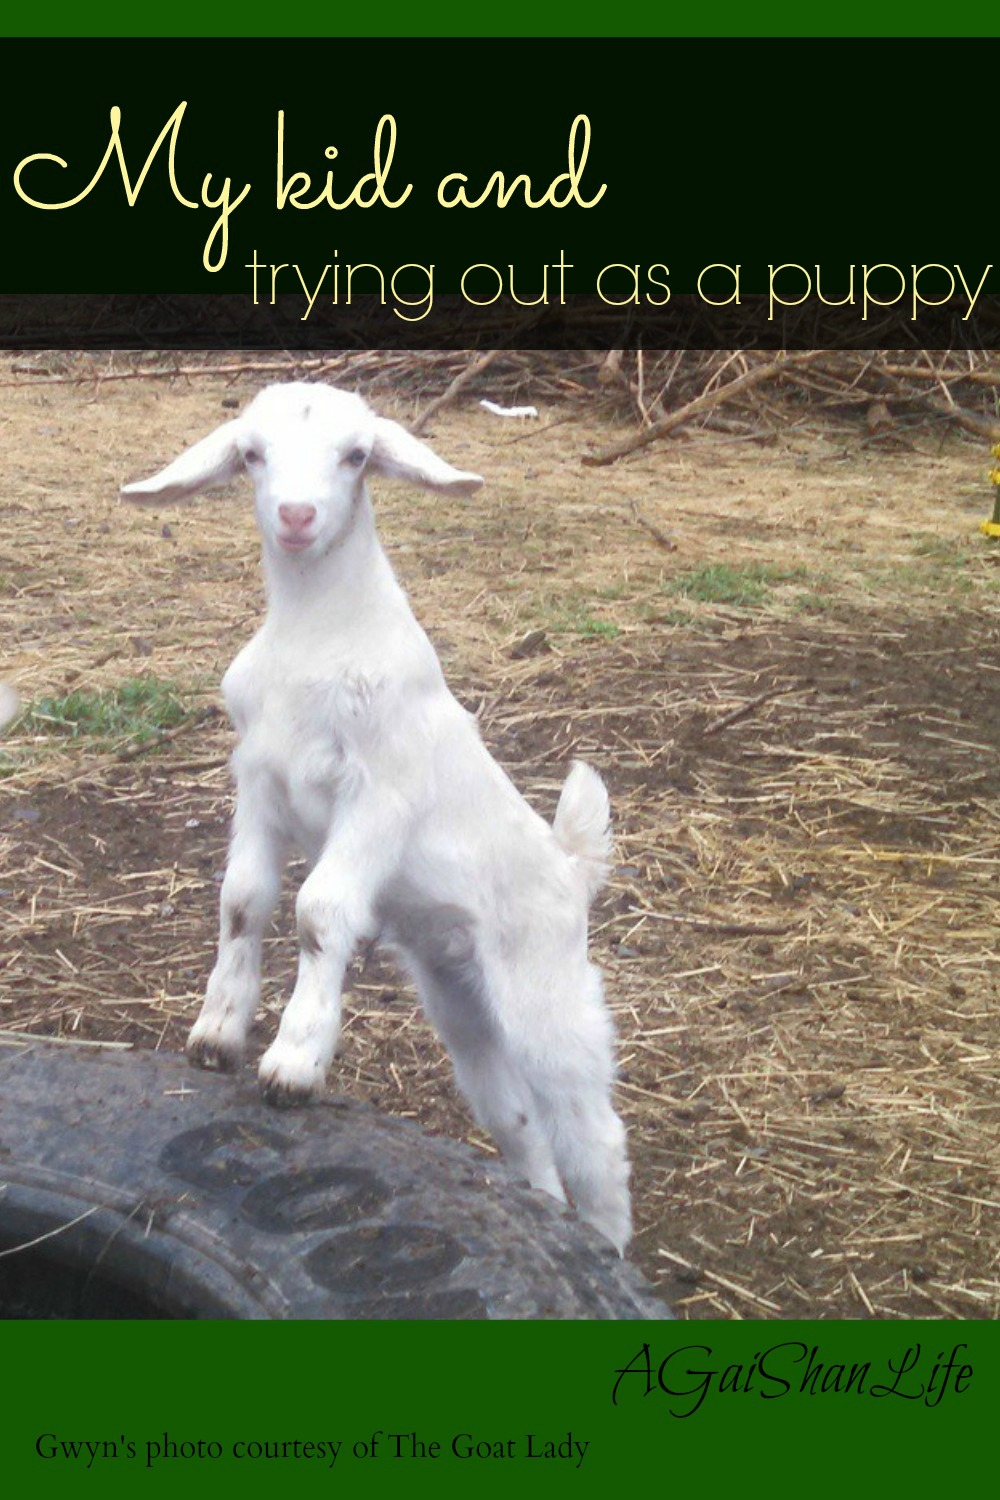 My kid's trying out for Team Puppy. Find The Goat Lady at Manorofmixedblessings.com